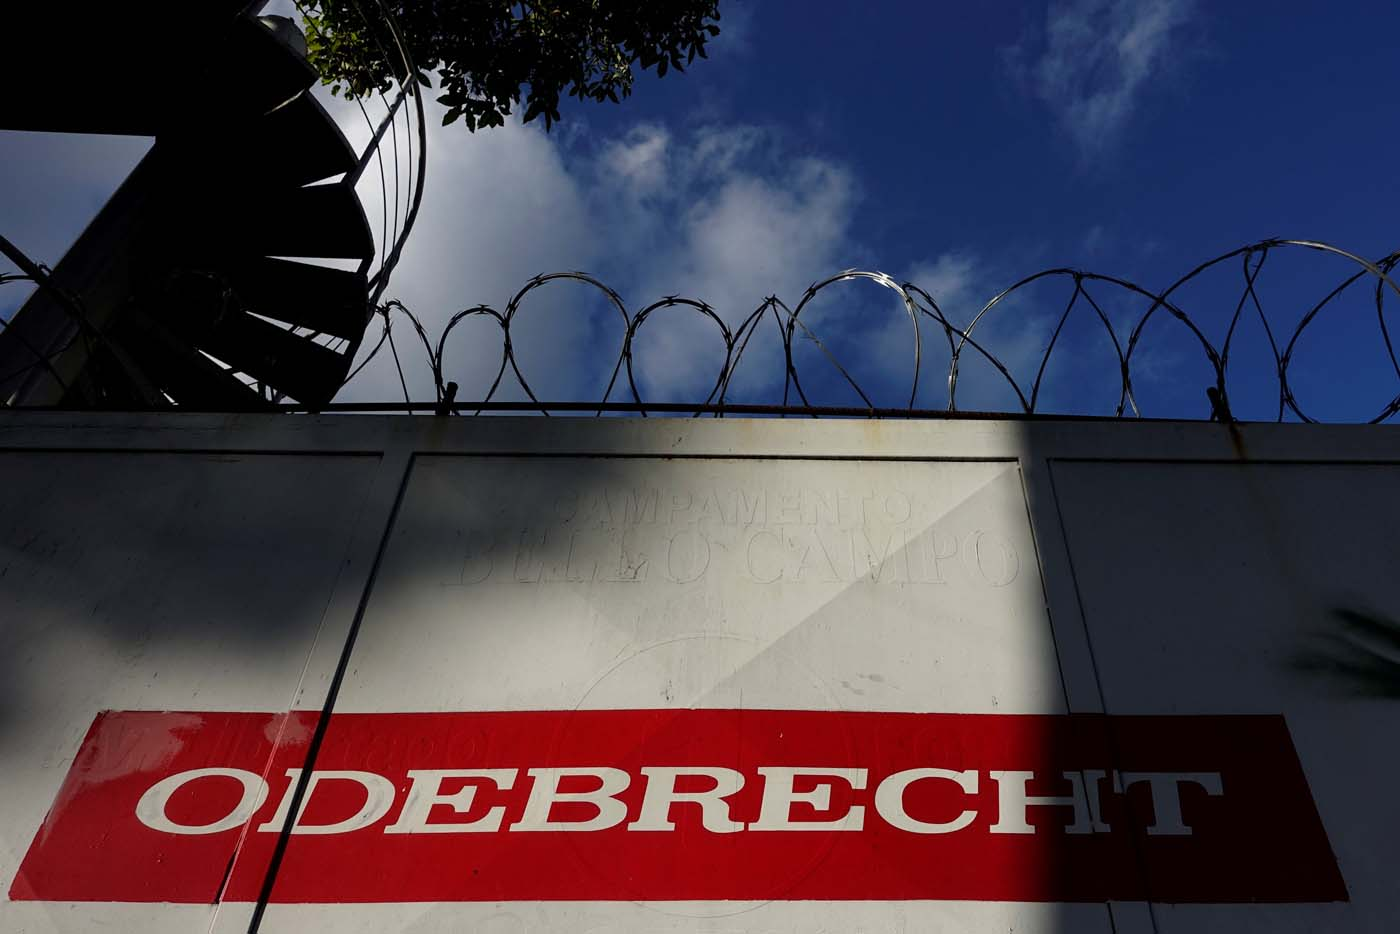 The corporate logo of Odebrecht is seen in a construction site in Caracas, Venezuela January 26, 2017. REUTERS/Carlos Garcia Rawlins